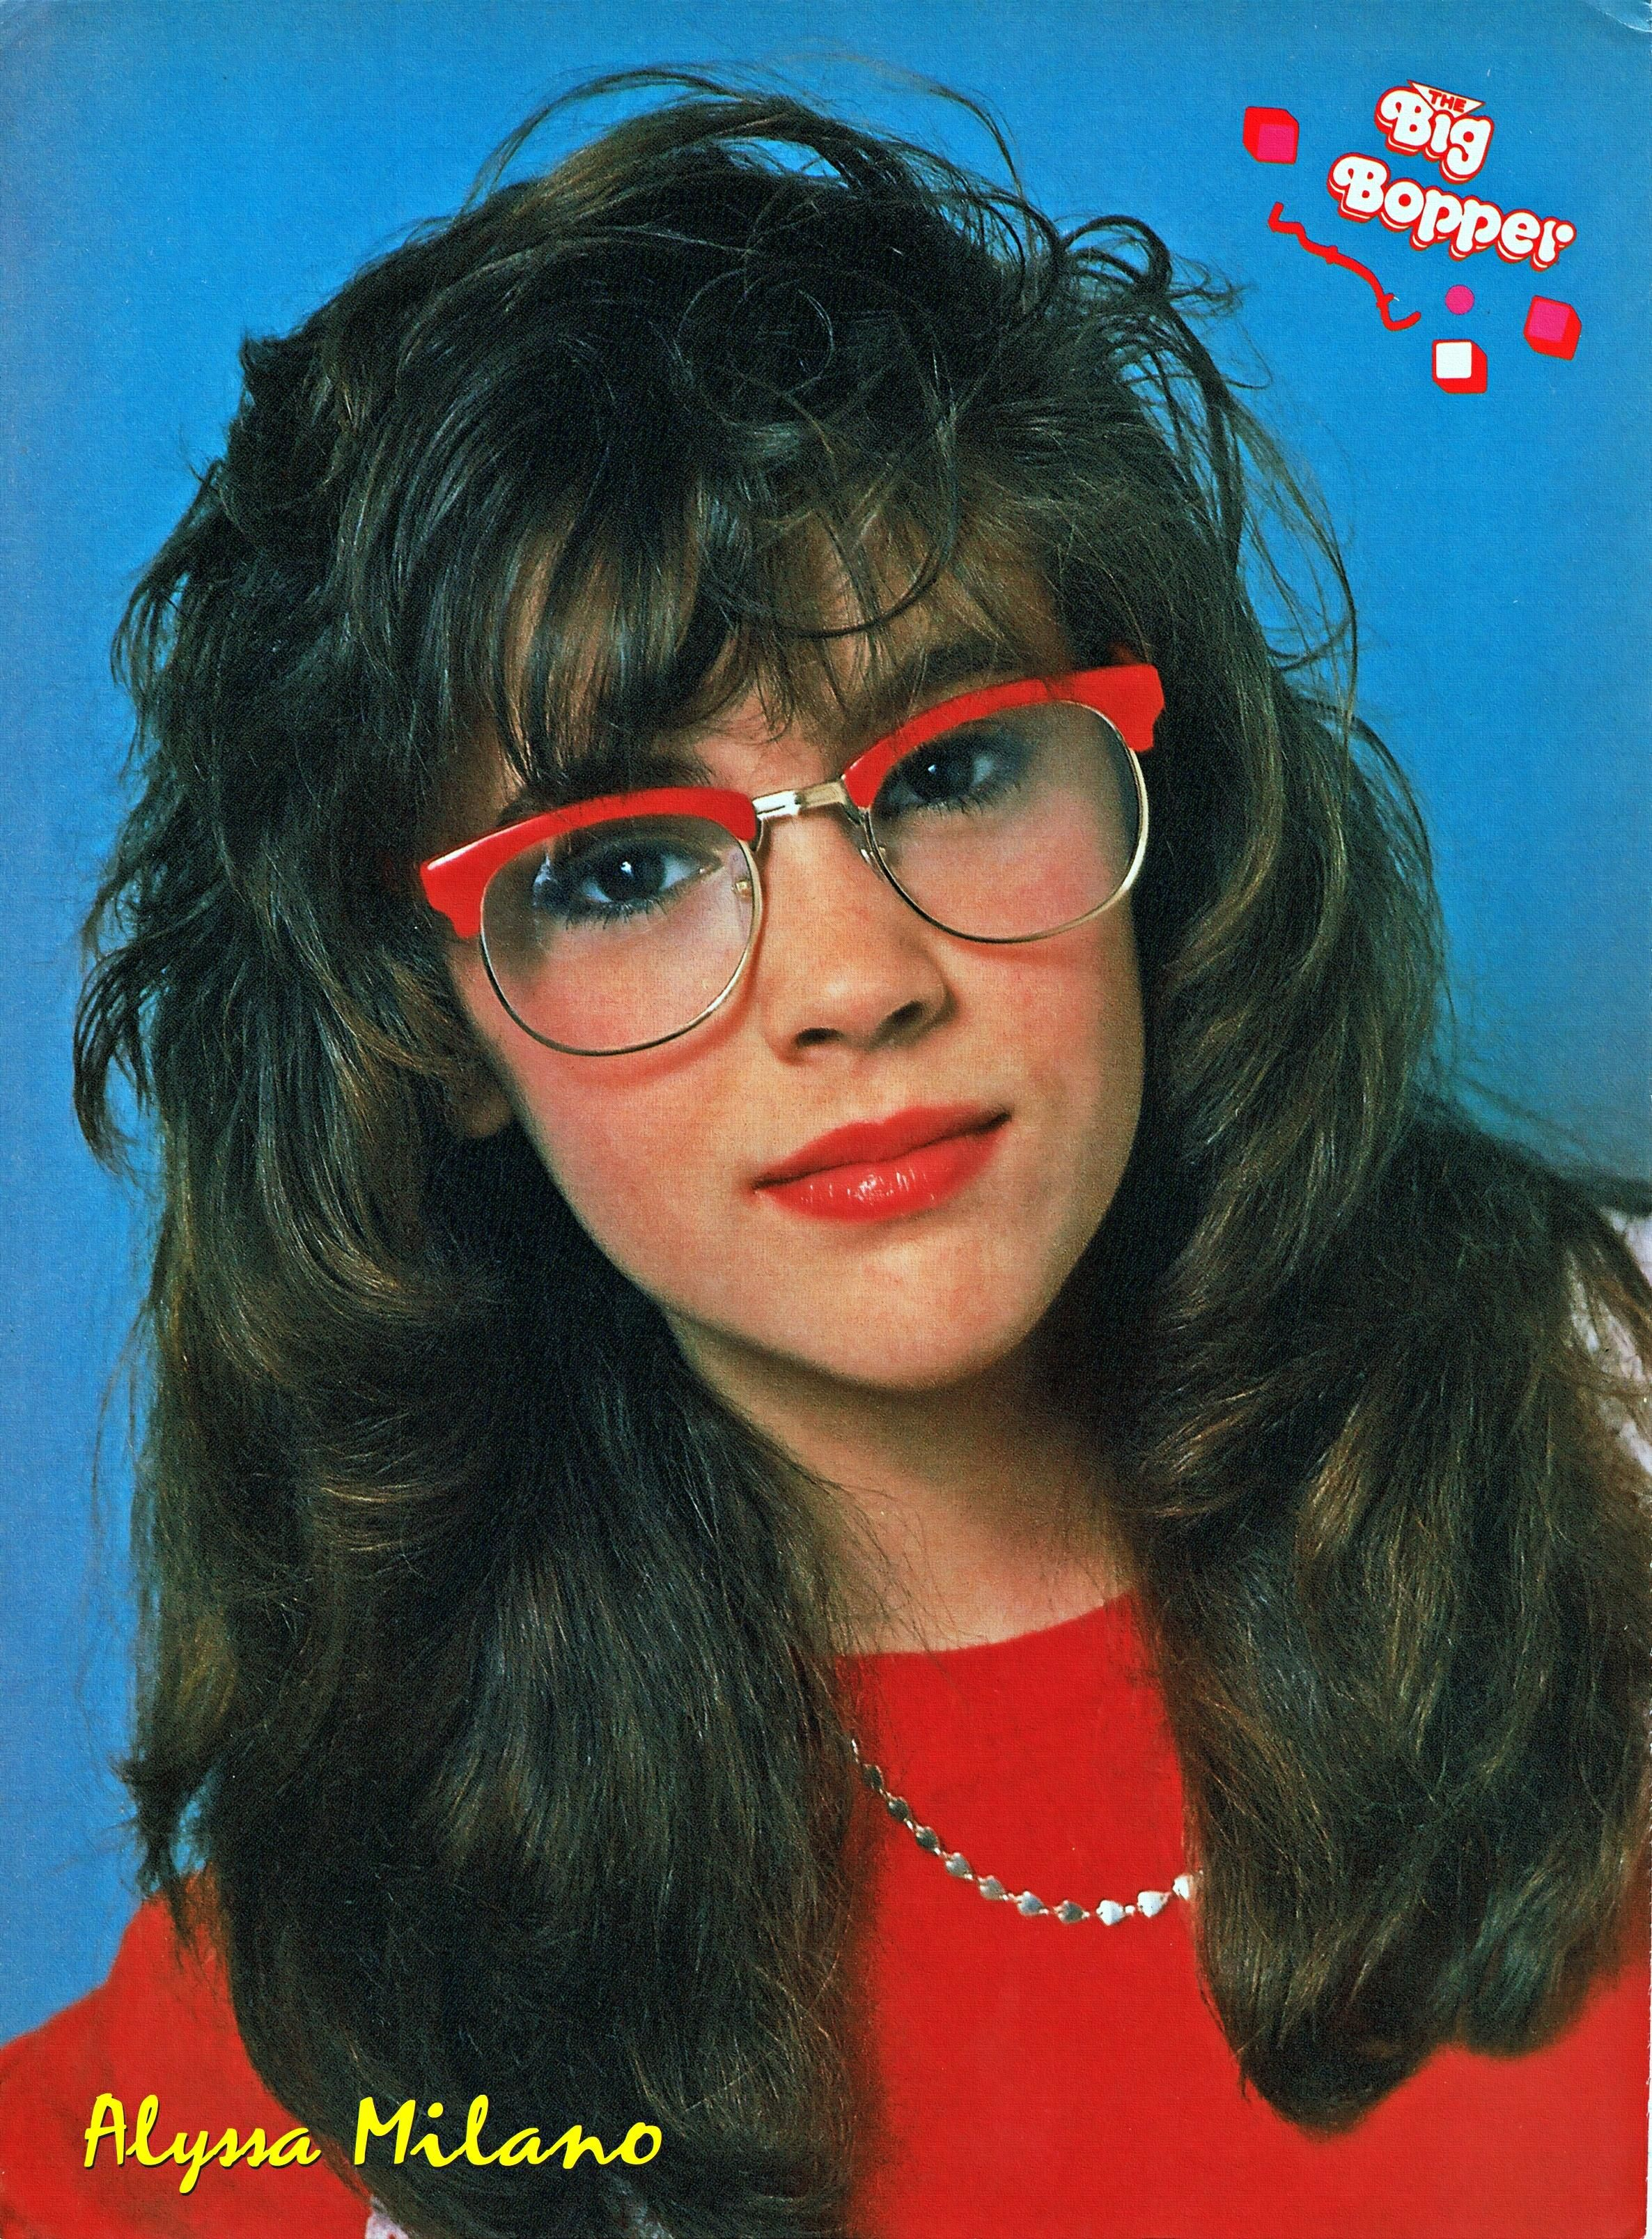 Pinup Of Alyssa Milano Wearing A Red Shirt And Eyeglasses From An